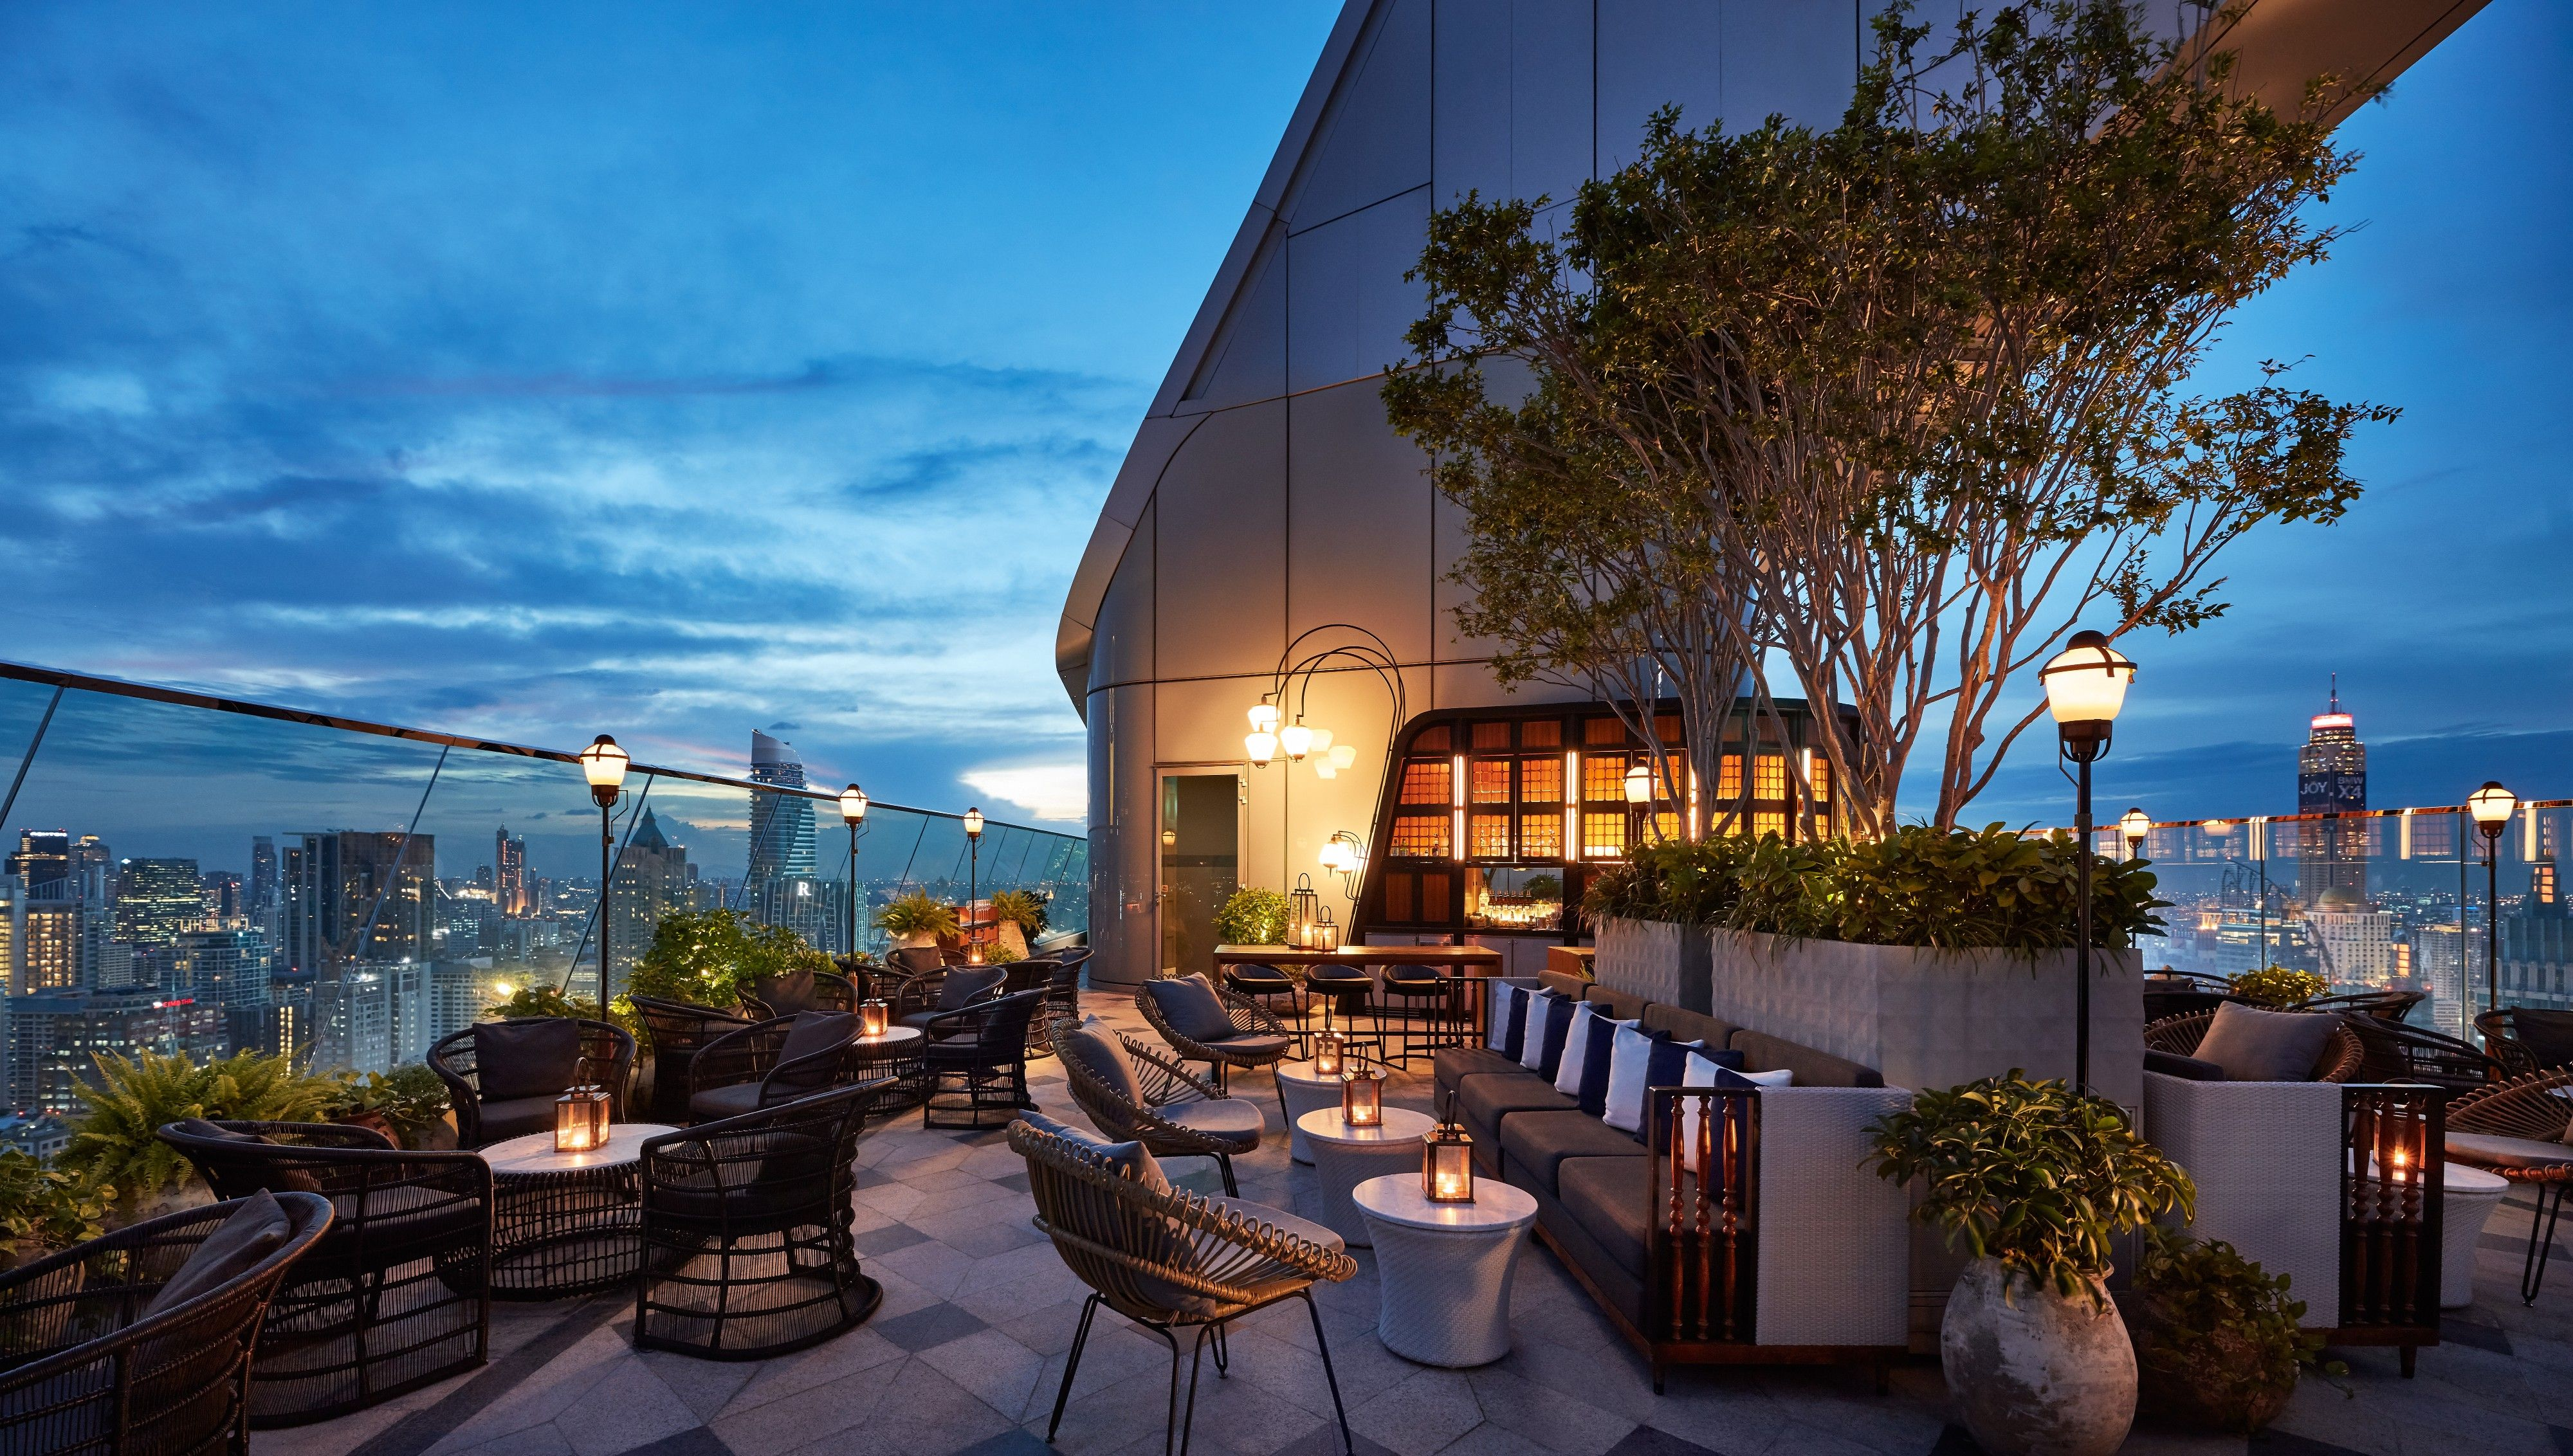 Penthouse Bar Grill Rooftop Best Rooftop Bars Roof Garden Hotel Rooftop Pool